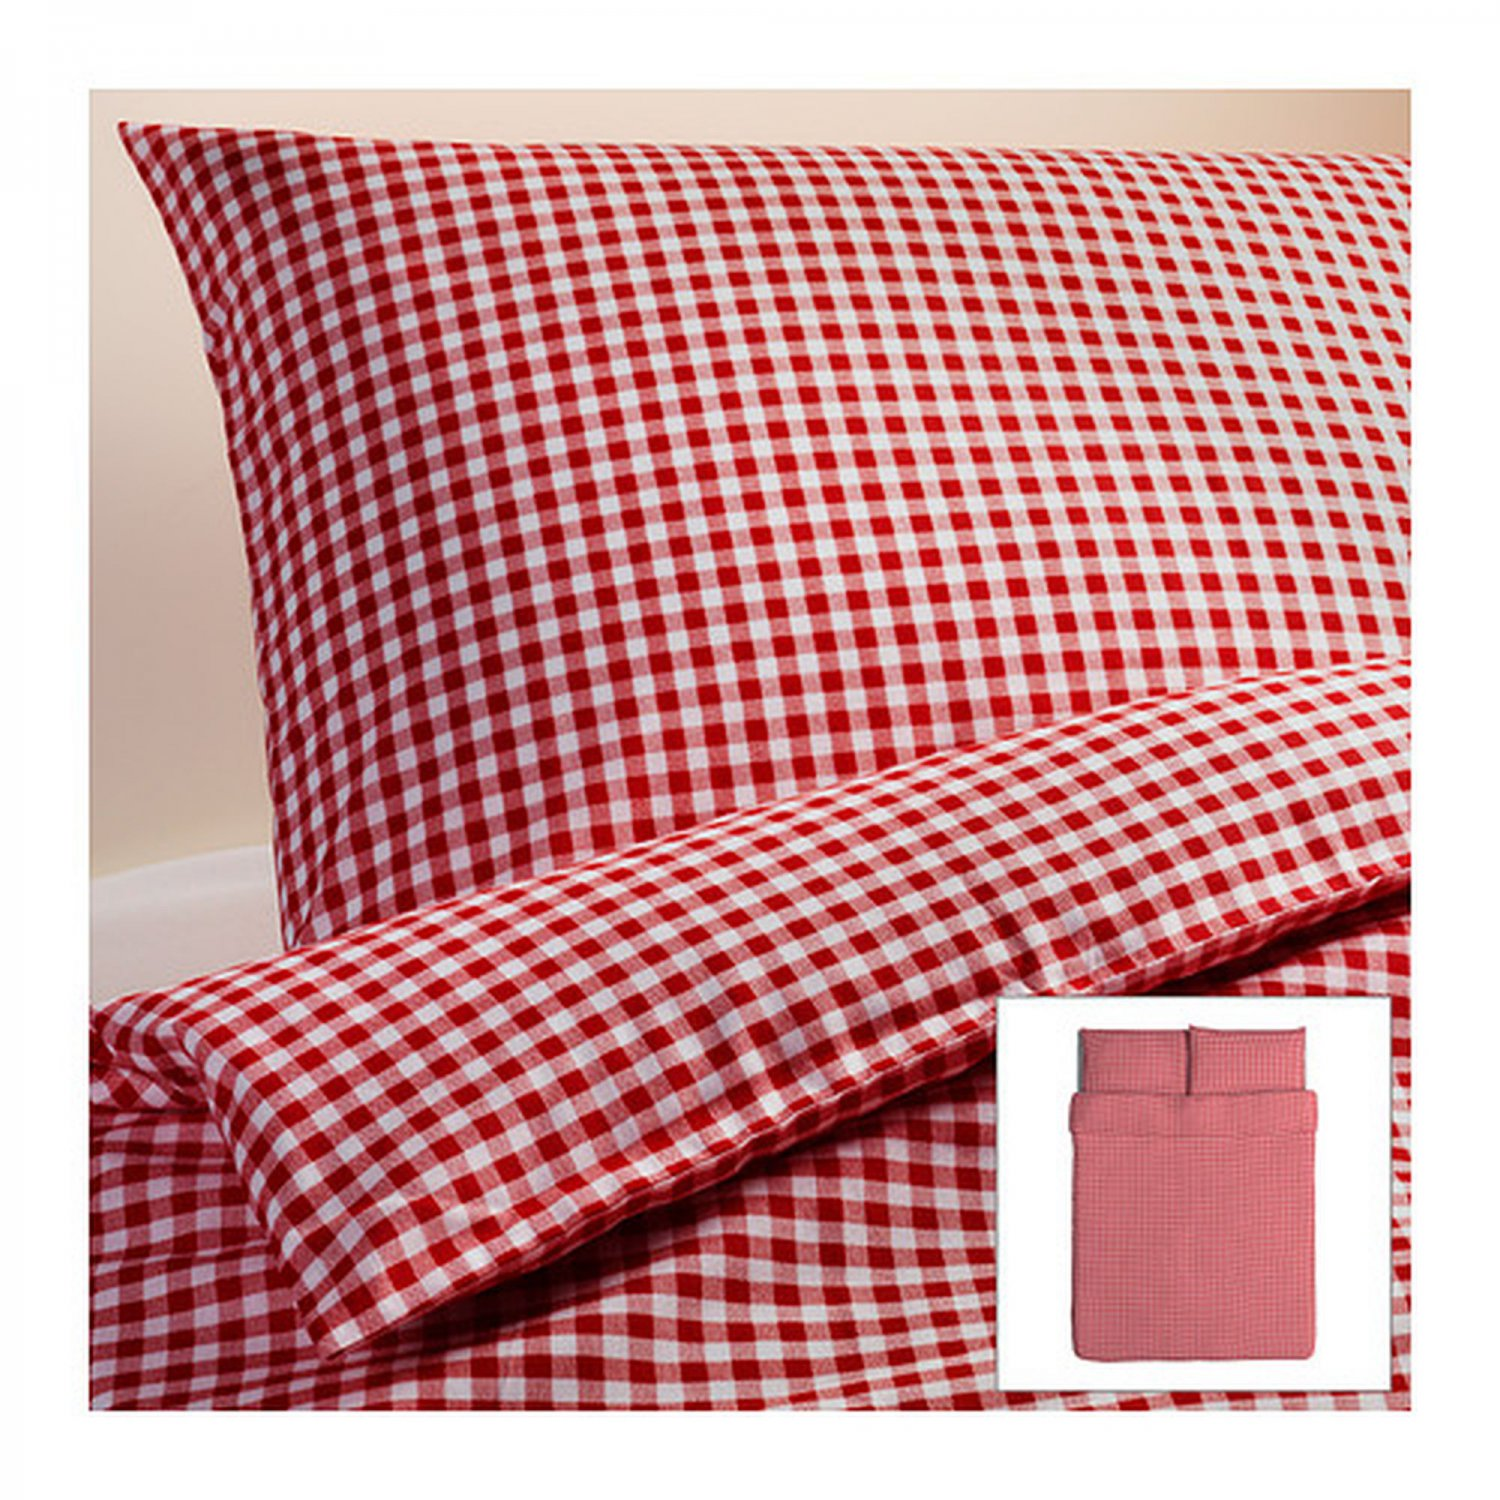 Ikea Liamaria Queen Duvet Cover Pillowcases Set Red